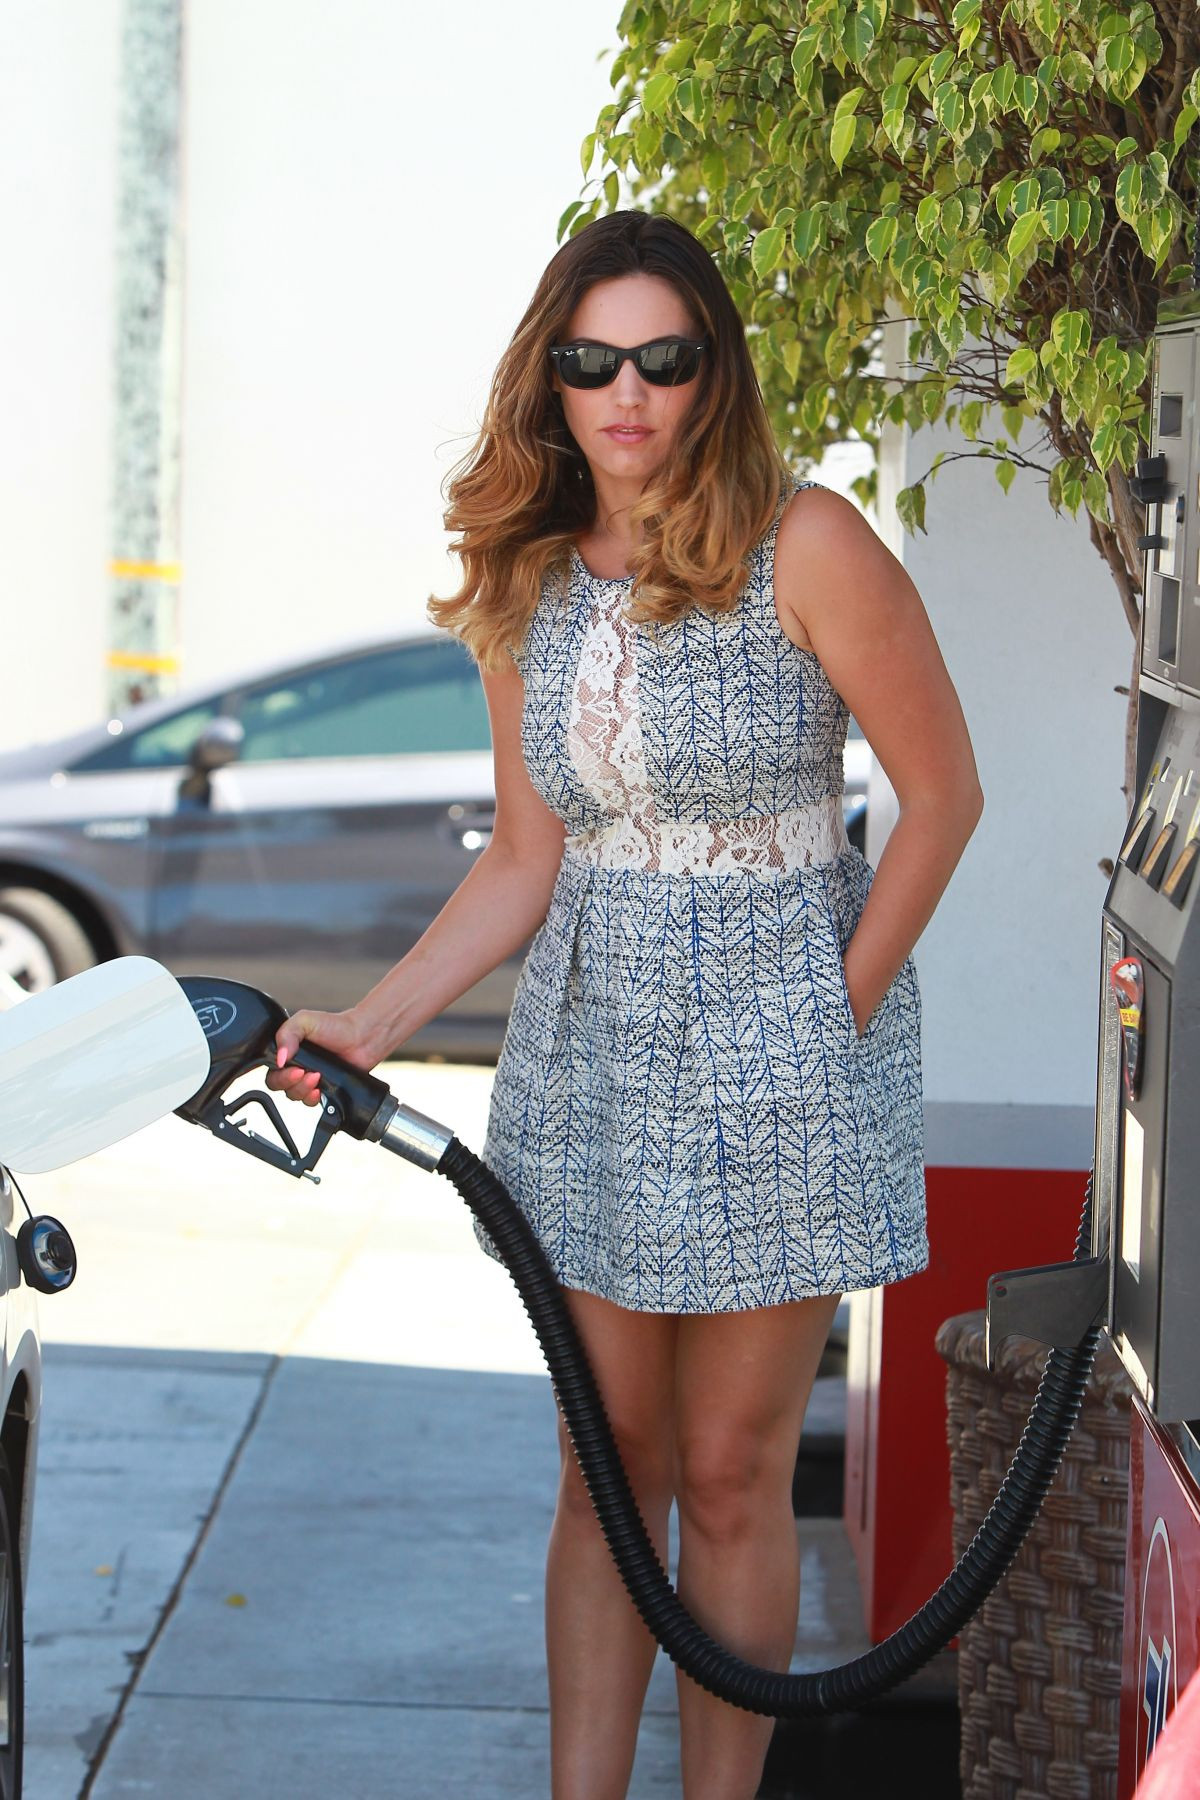 KELLY BROOK at a Gas Station in Los Angeles